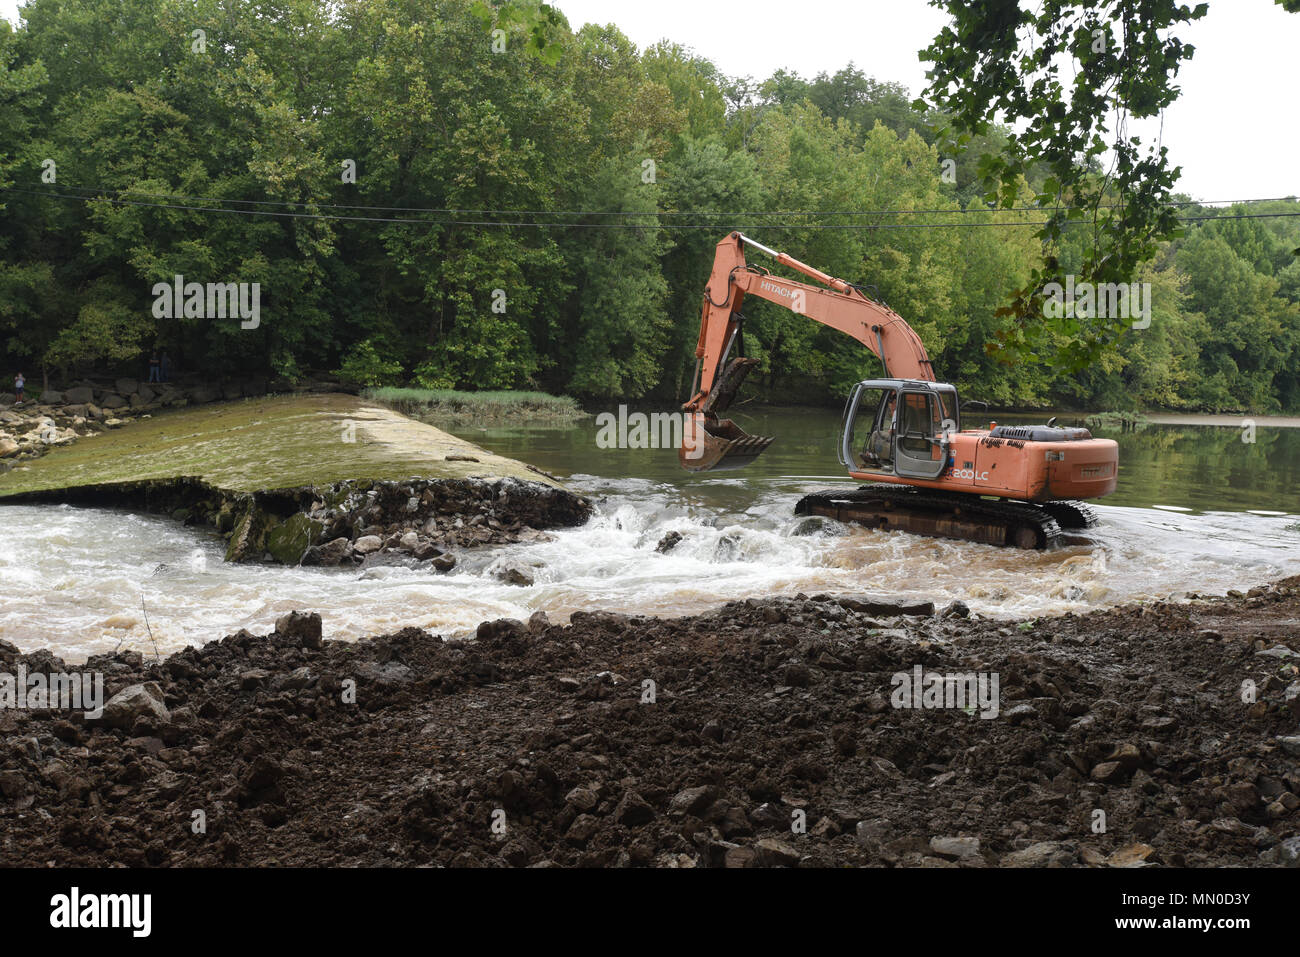 An excavator moves into position to remove Roaring River Dam in Jackson County, Tennessee Aug. 1, 2017. The Tennessee Wildlife Resources Agency is removing the dam, built in 1976 by the U.S. Army Corps of Engineers Nashville District.  The dam in Jackson County, Tennessee was at risk of failure and the Corps of Engineers determined that it would be better to remove the dam as it was no longer needed as a fish barrier on the Cumberland River tributary.  Partners in the joint effort to remove the dam include TWRA, Corps of Engineers, The Nature Conservancy, U.S. Fish and Wildlife Service, Tennes - Stock Image